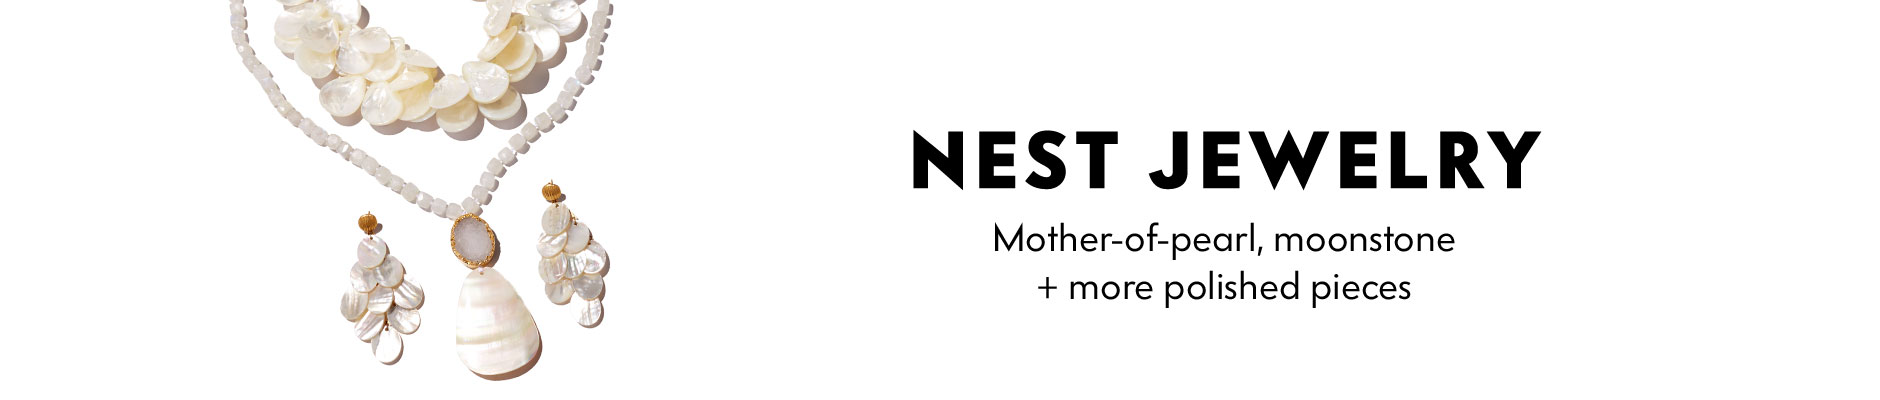 Nest Jewelry - Mother-of-pearl, moonstone + more polished pieces